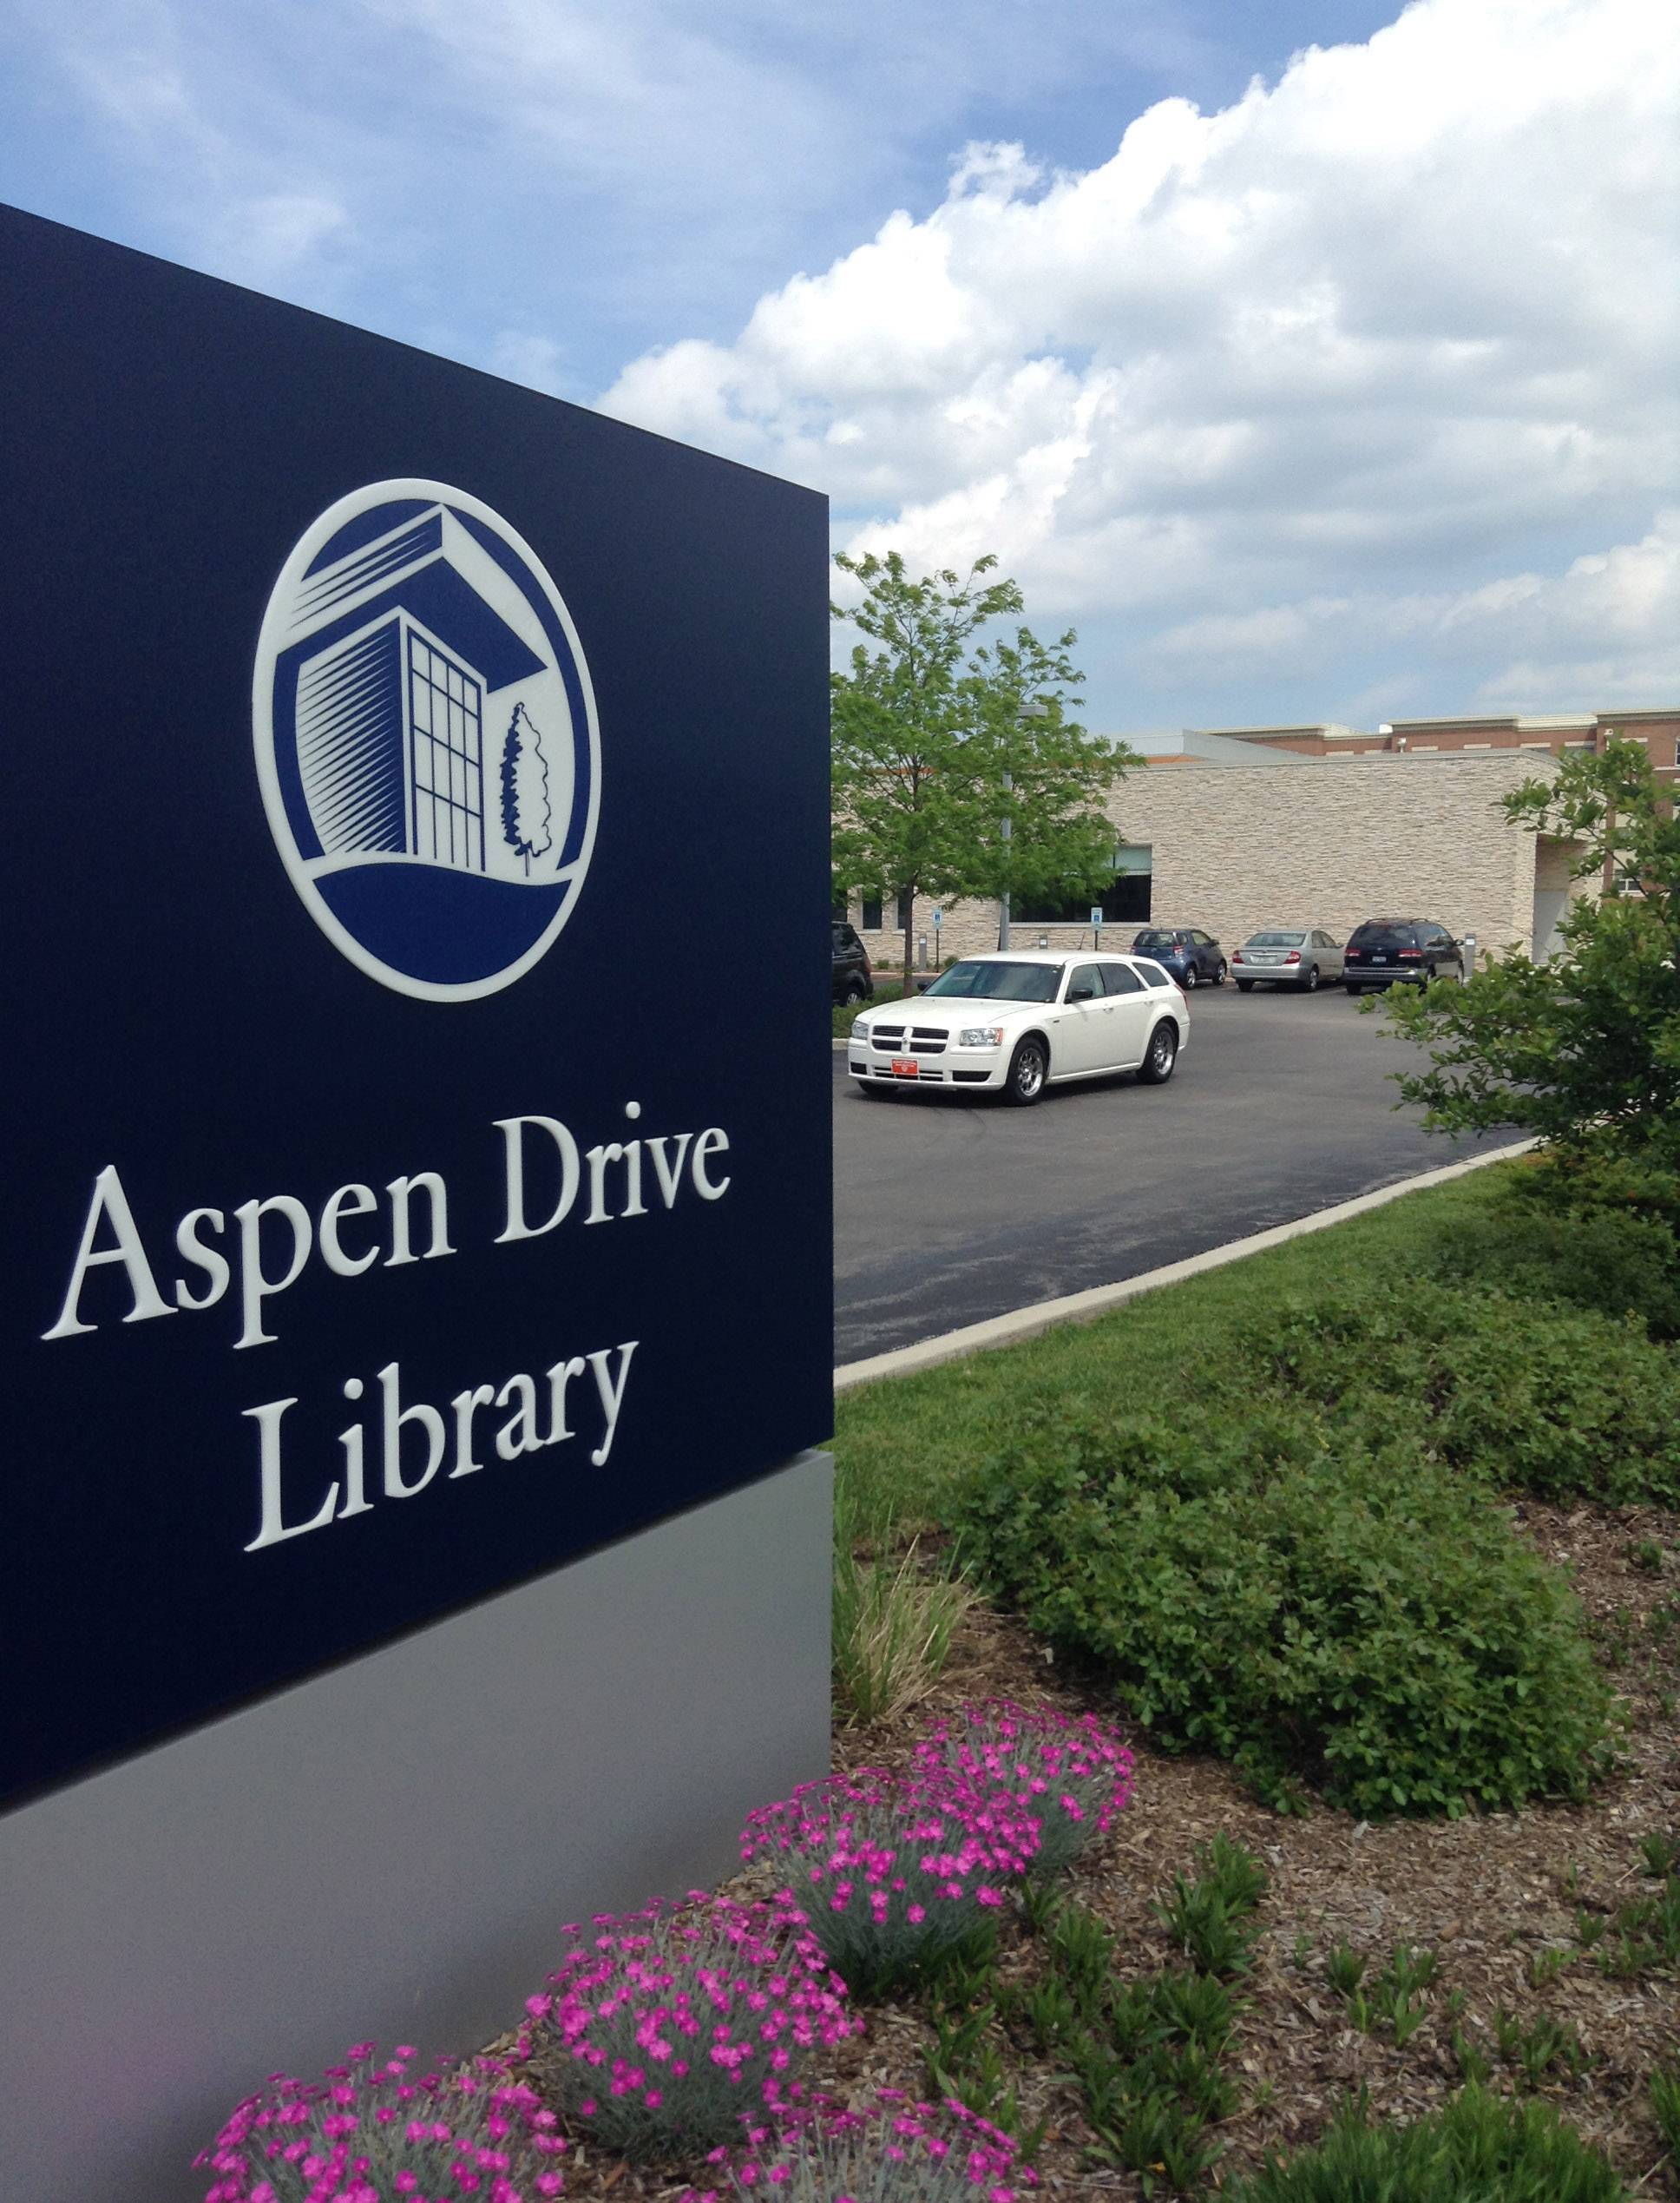 The Aspen Drive Library in Vernon Hills has an immediate need for more parking, officials say.